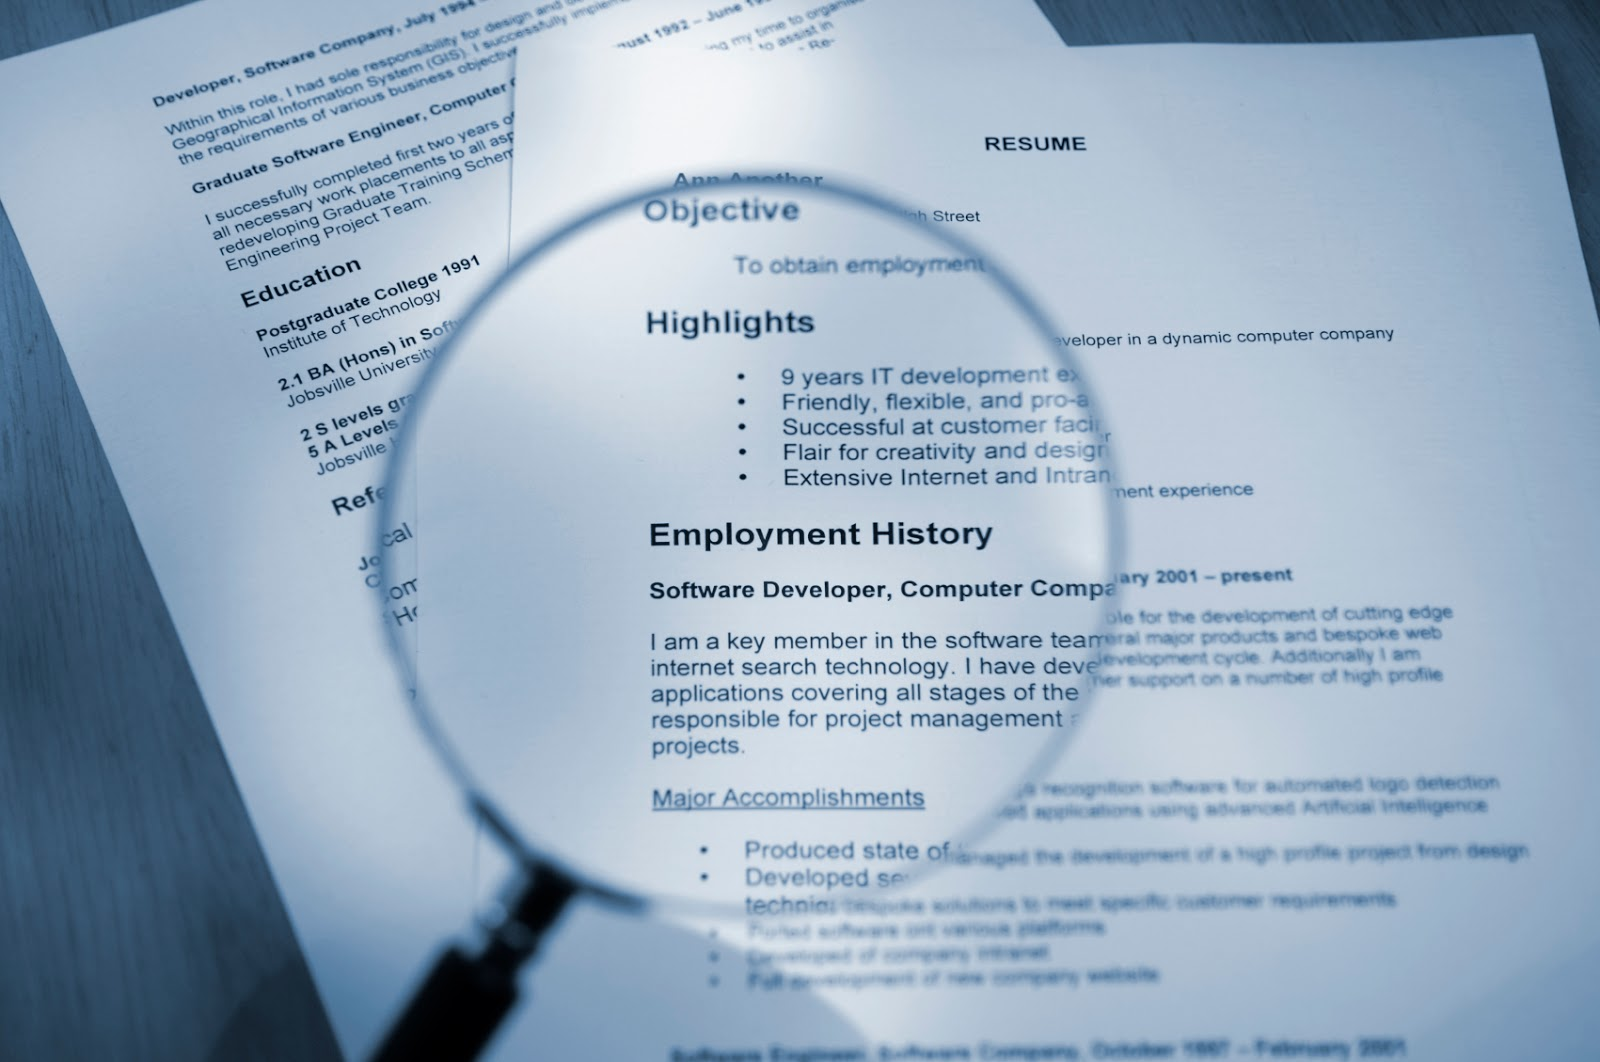 hire a hero hire a vet resume 101 how to read and identify red